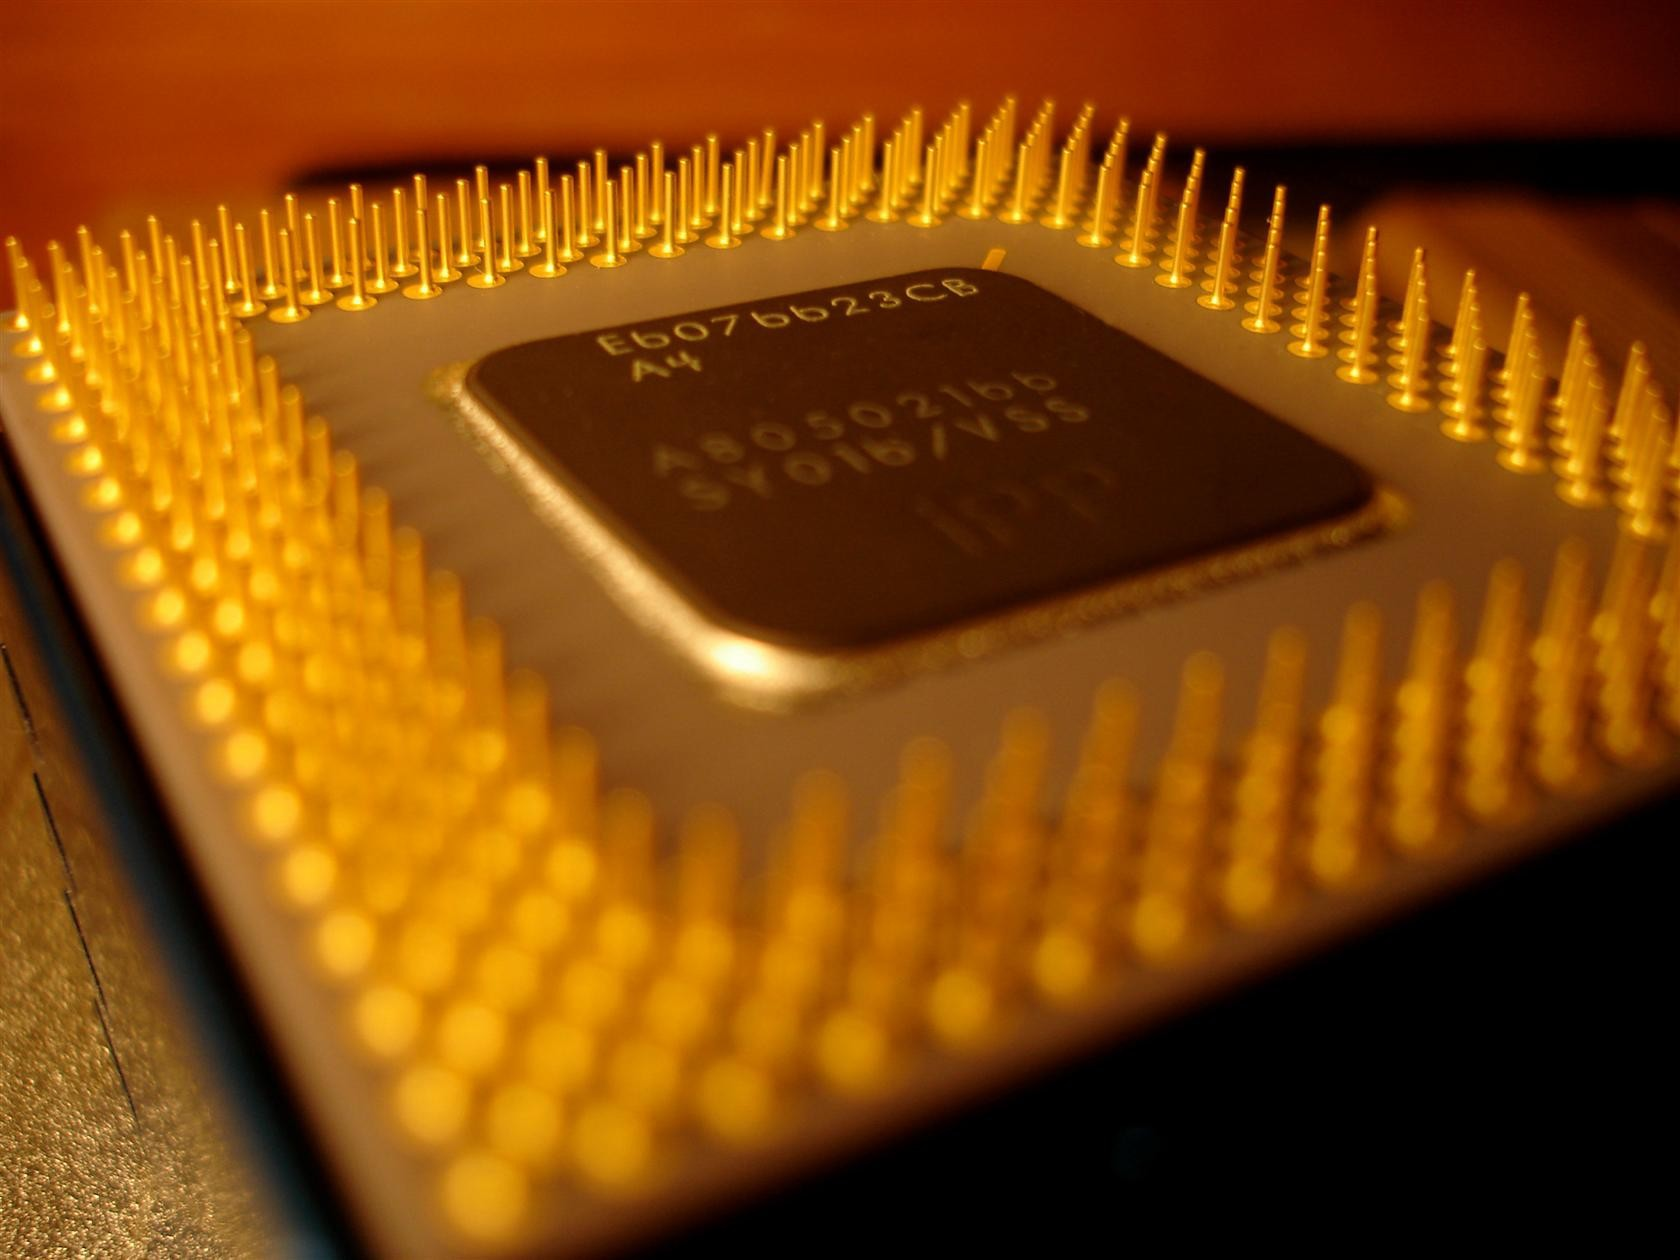 Modern computer chip wallpapers and images   wallpapers pictures 1680x1260